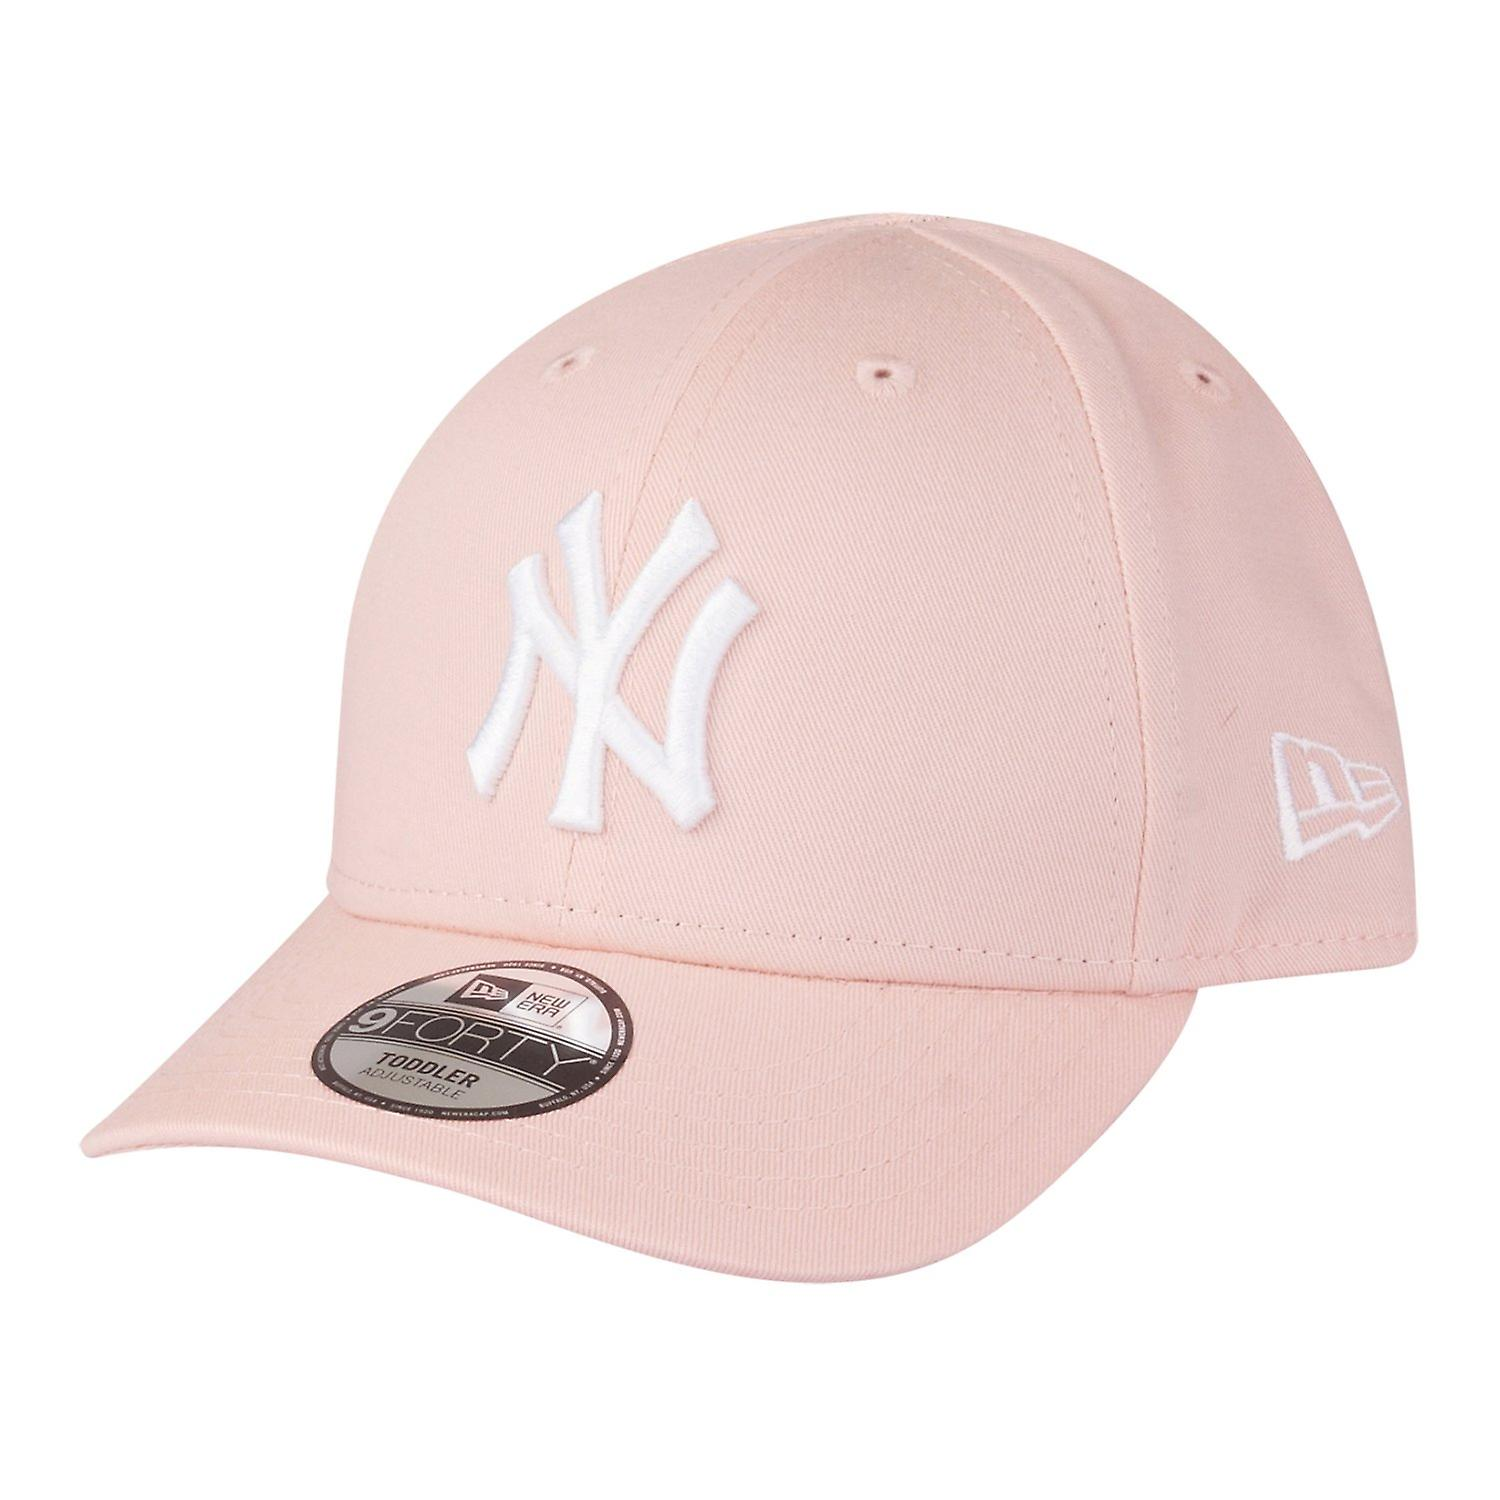 New era 9Forty stretched girl KIDS Cap - NY Yankees pink  3df61a9cdbd